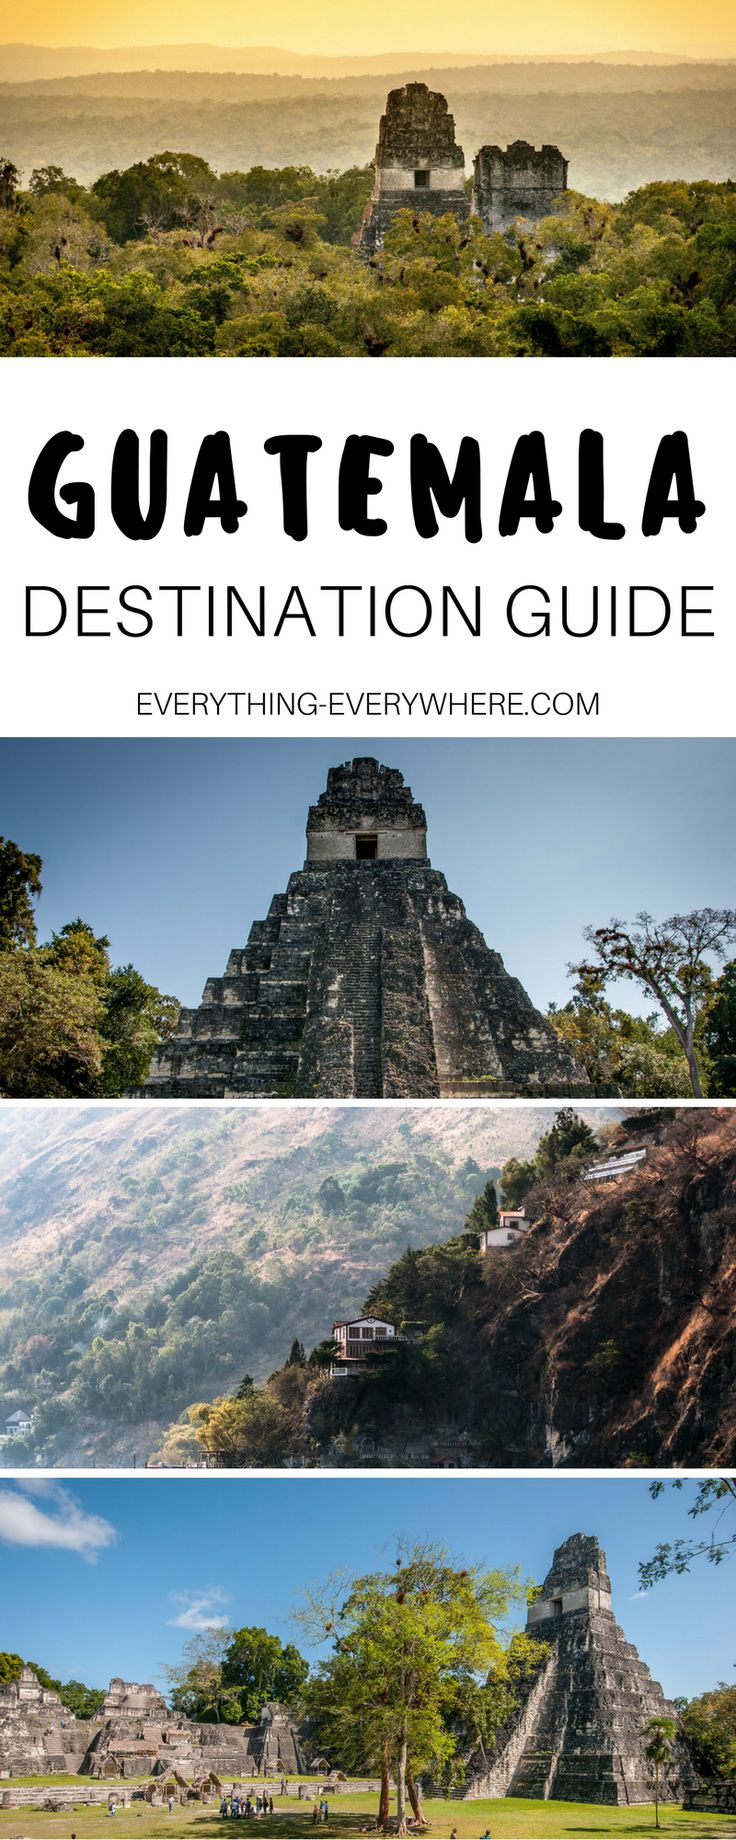 A complete guide to exploring Guatemala. Located in Central America, this guide includes things to do in destinations such as Tikal, Lake Atitlan, Pacaya and beyond, as well as best Guatemalan food and cuisine and practical tips for your trip. Travel in Latin America. | Everything Everywhere Travel Blog #Guatemala